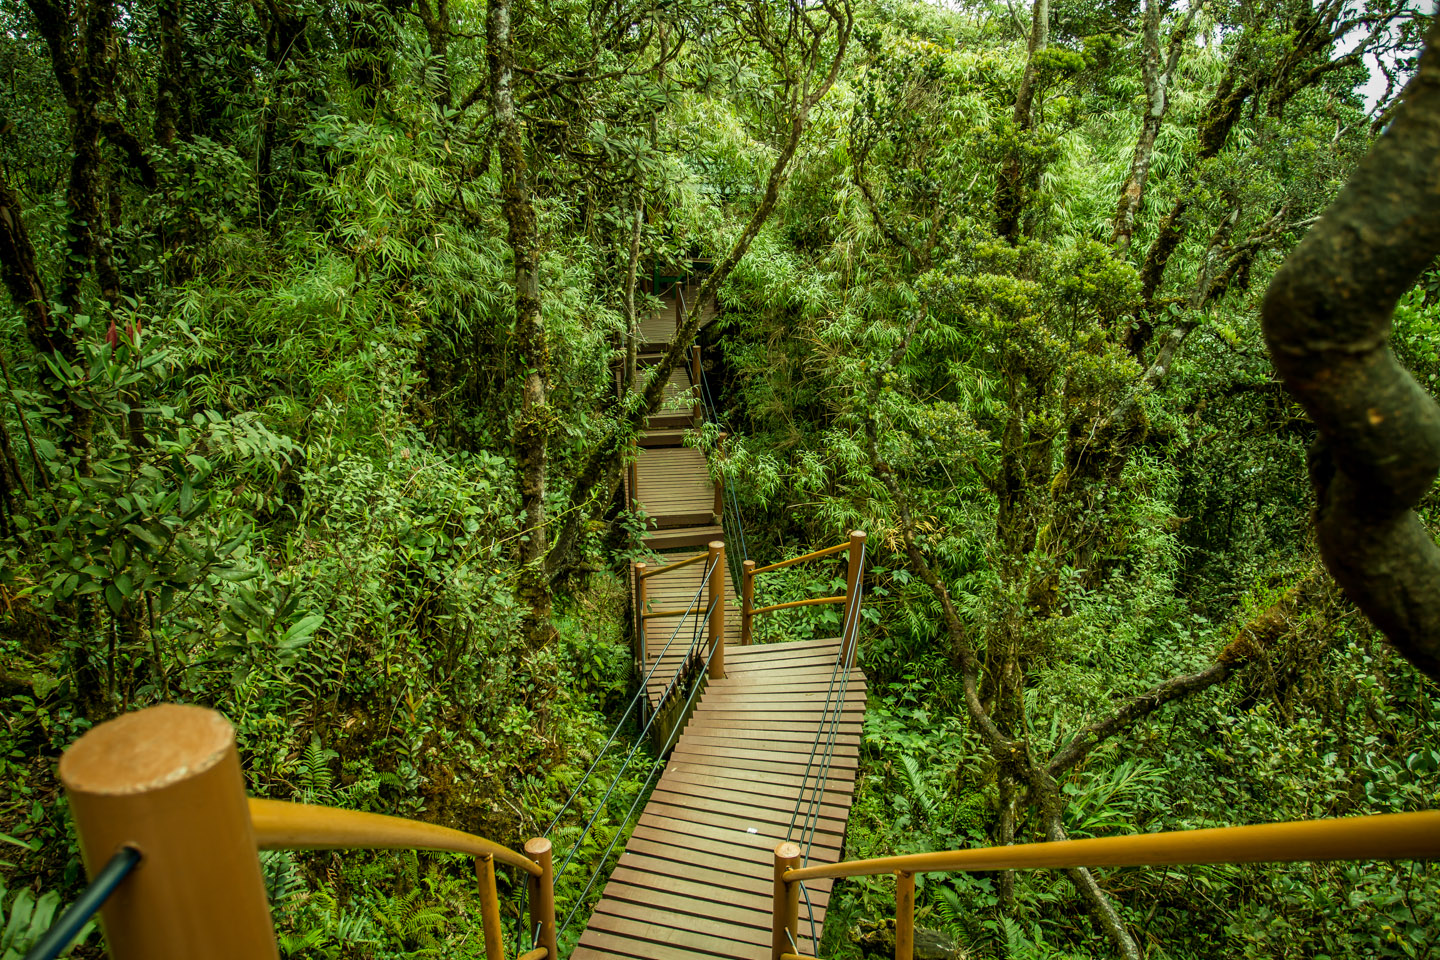 Stairway with many stairs in the Mossy Forest Mount Gunung Batu Brinchang